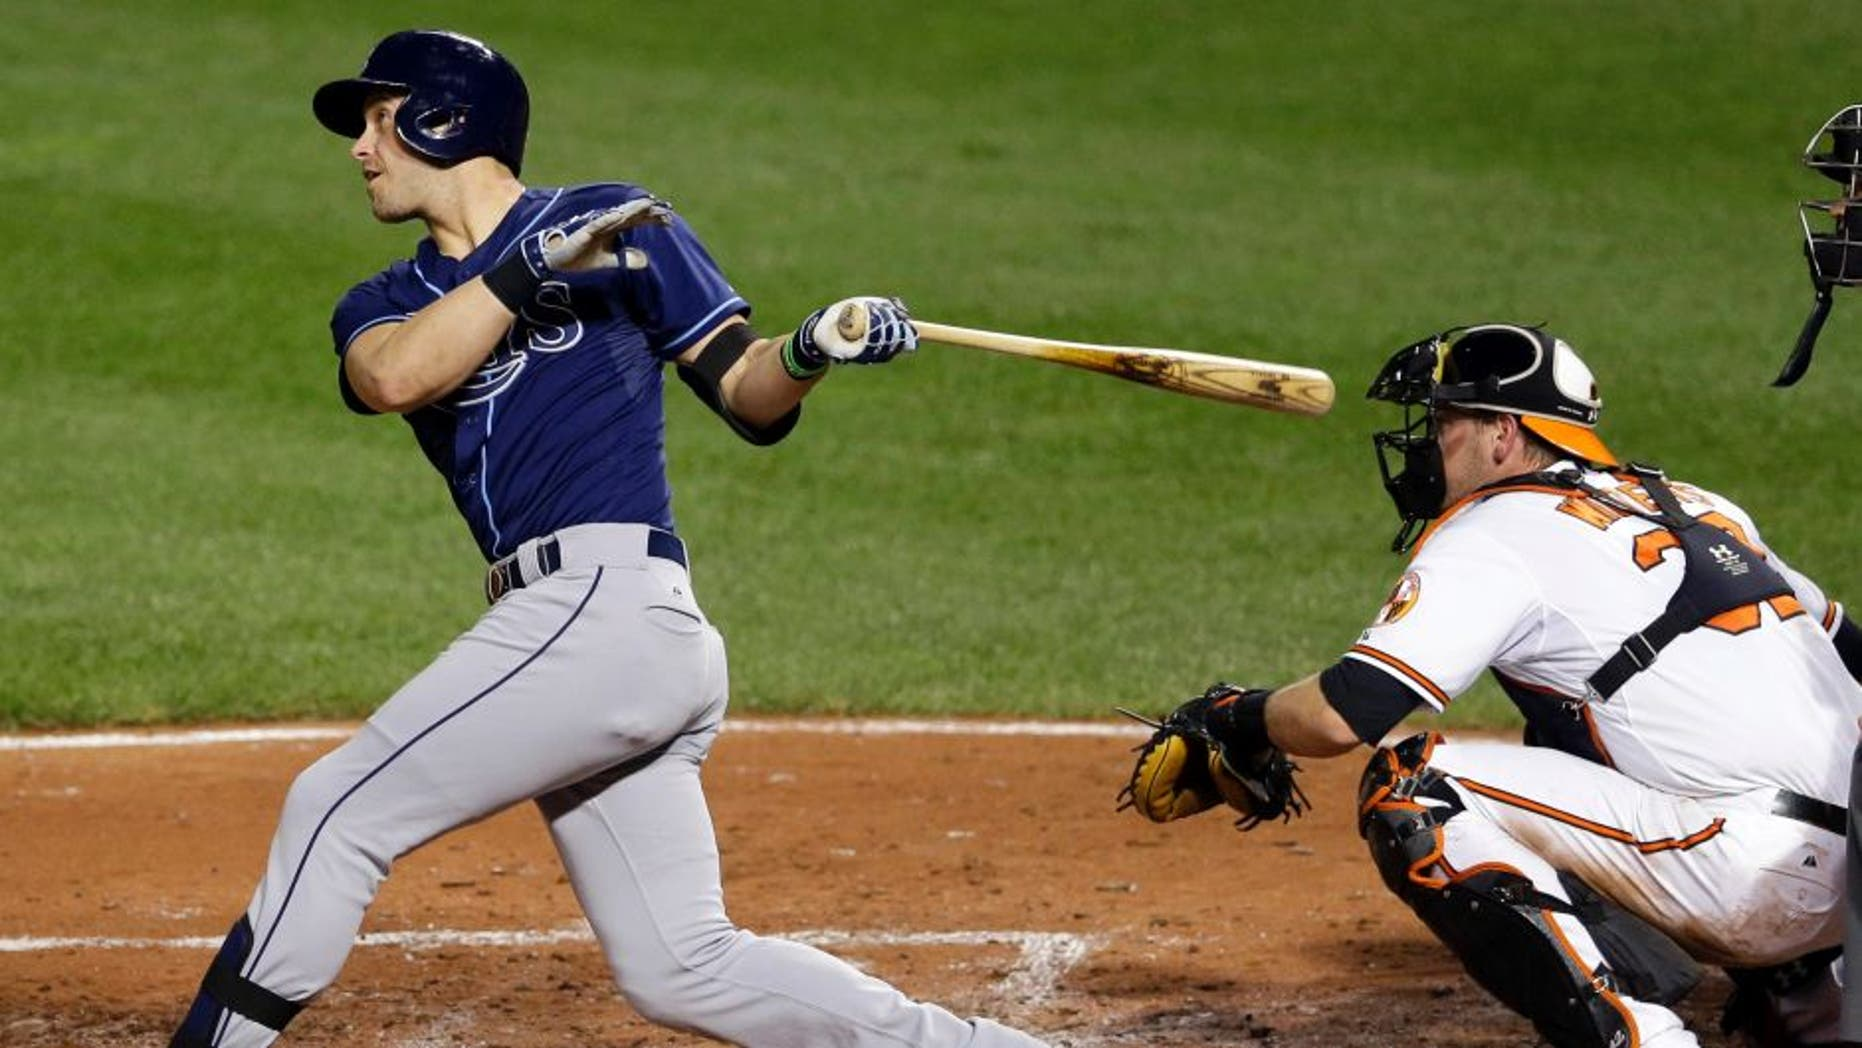 Tampa Bay Rays' Evan Longoria, left, watches his two-run home run in front of Baltimore Orioles catcher Matt Wieters and home plate umpire Cory Blaser in the third inning of a baseball game, Wednesday, Sept. 2, 2015, in Baltimore. (AP Photo/Patrick Semansky)